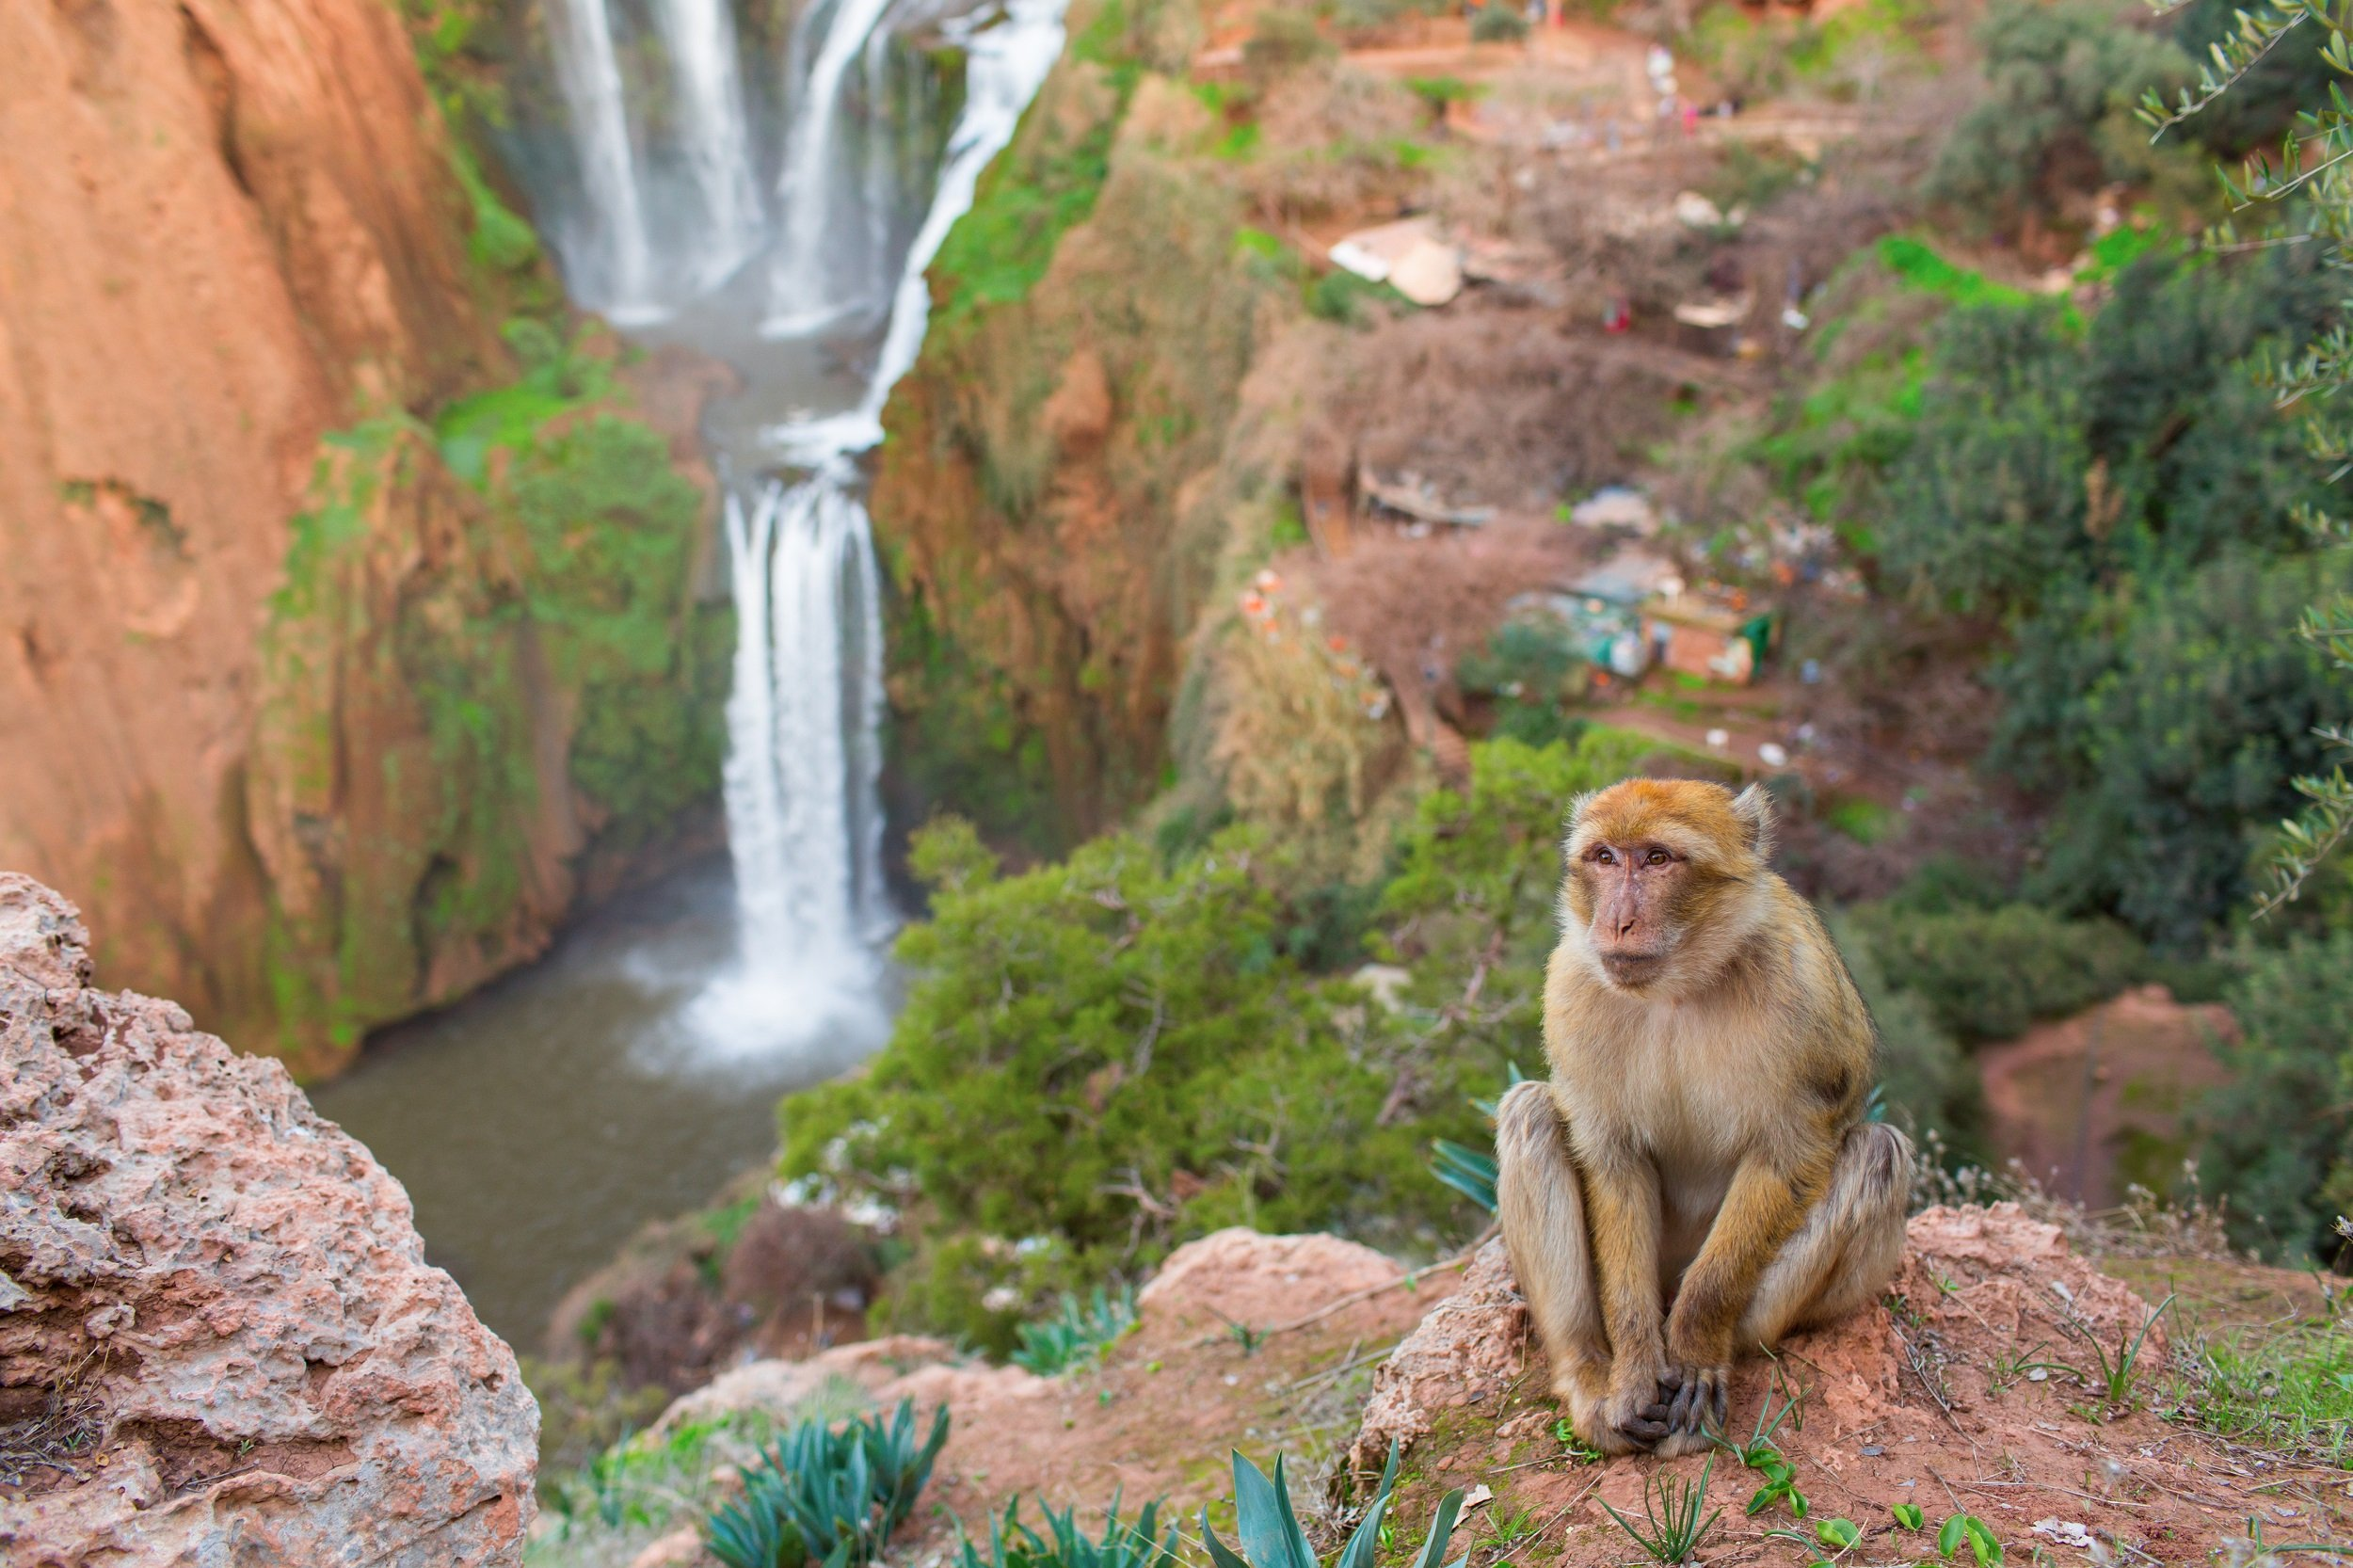 Explore The Flora & Fauna Around The Waterfall On The Ouzoud Waterfalls Tour From Marrakesh